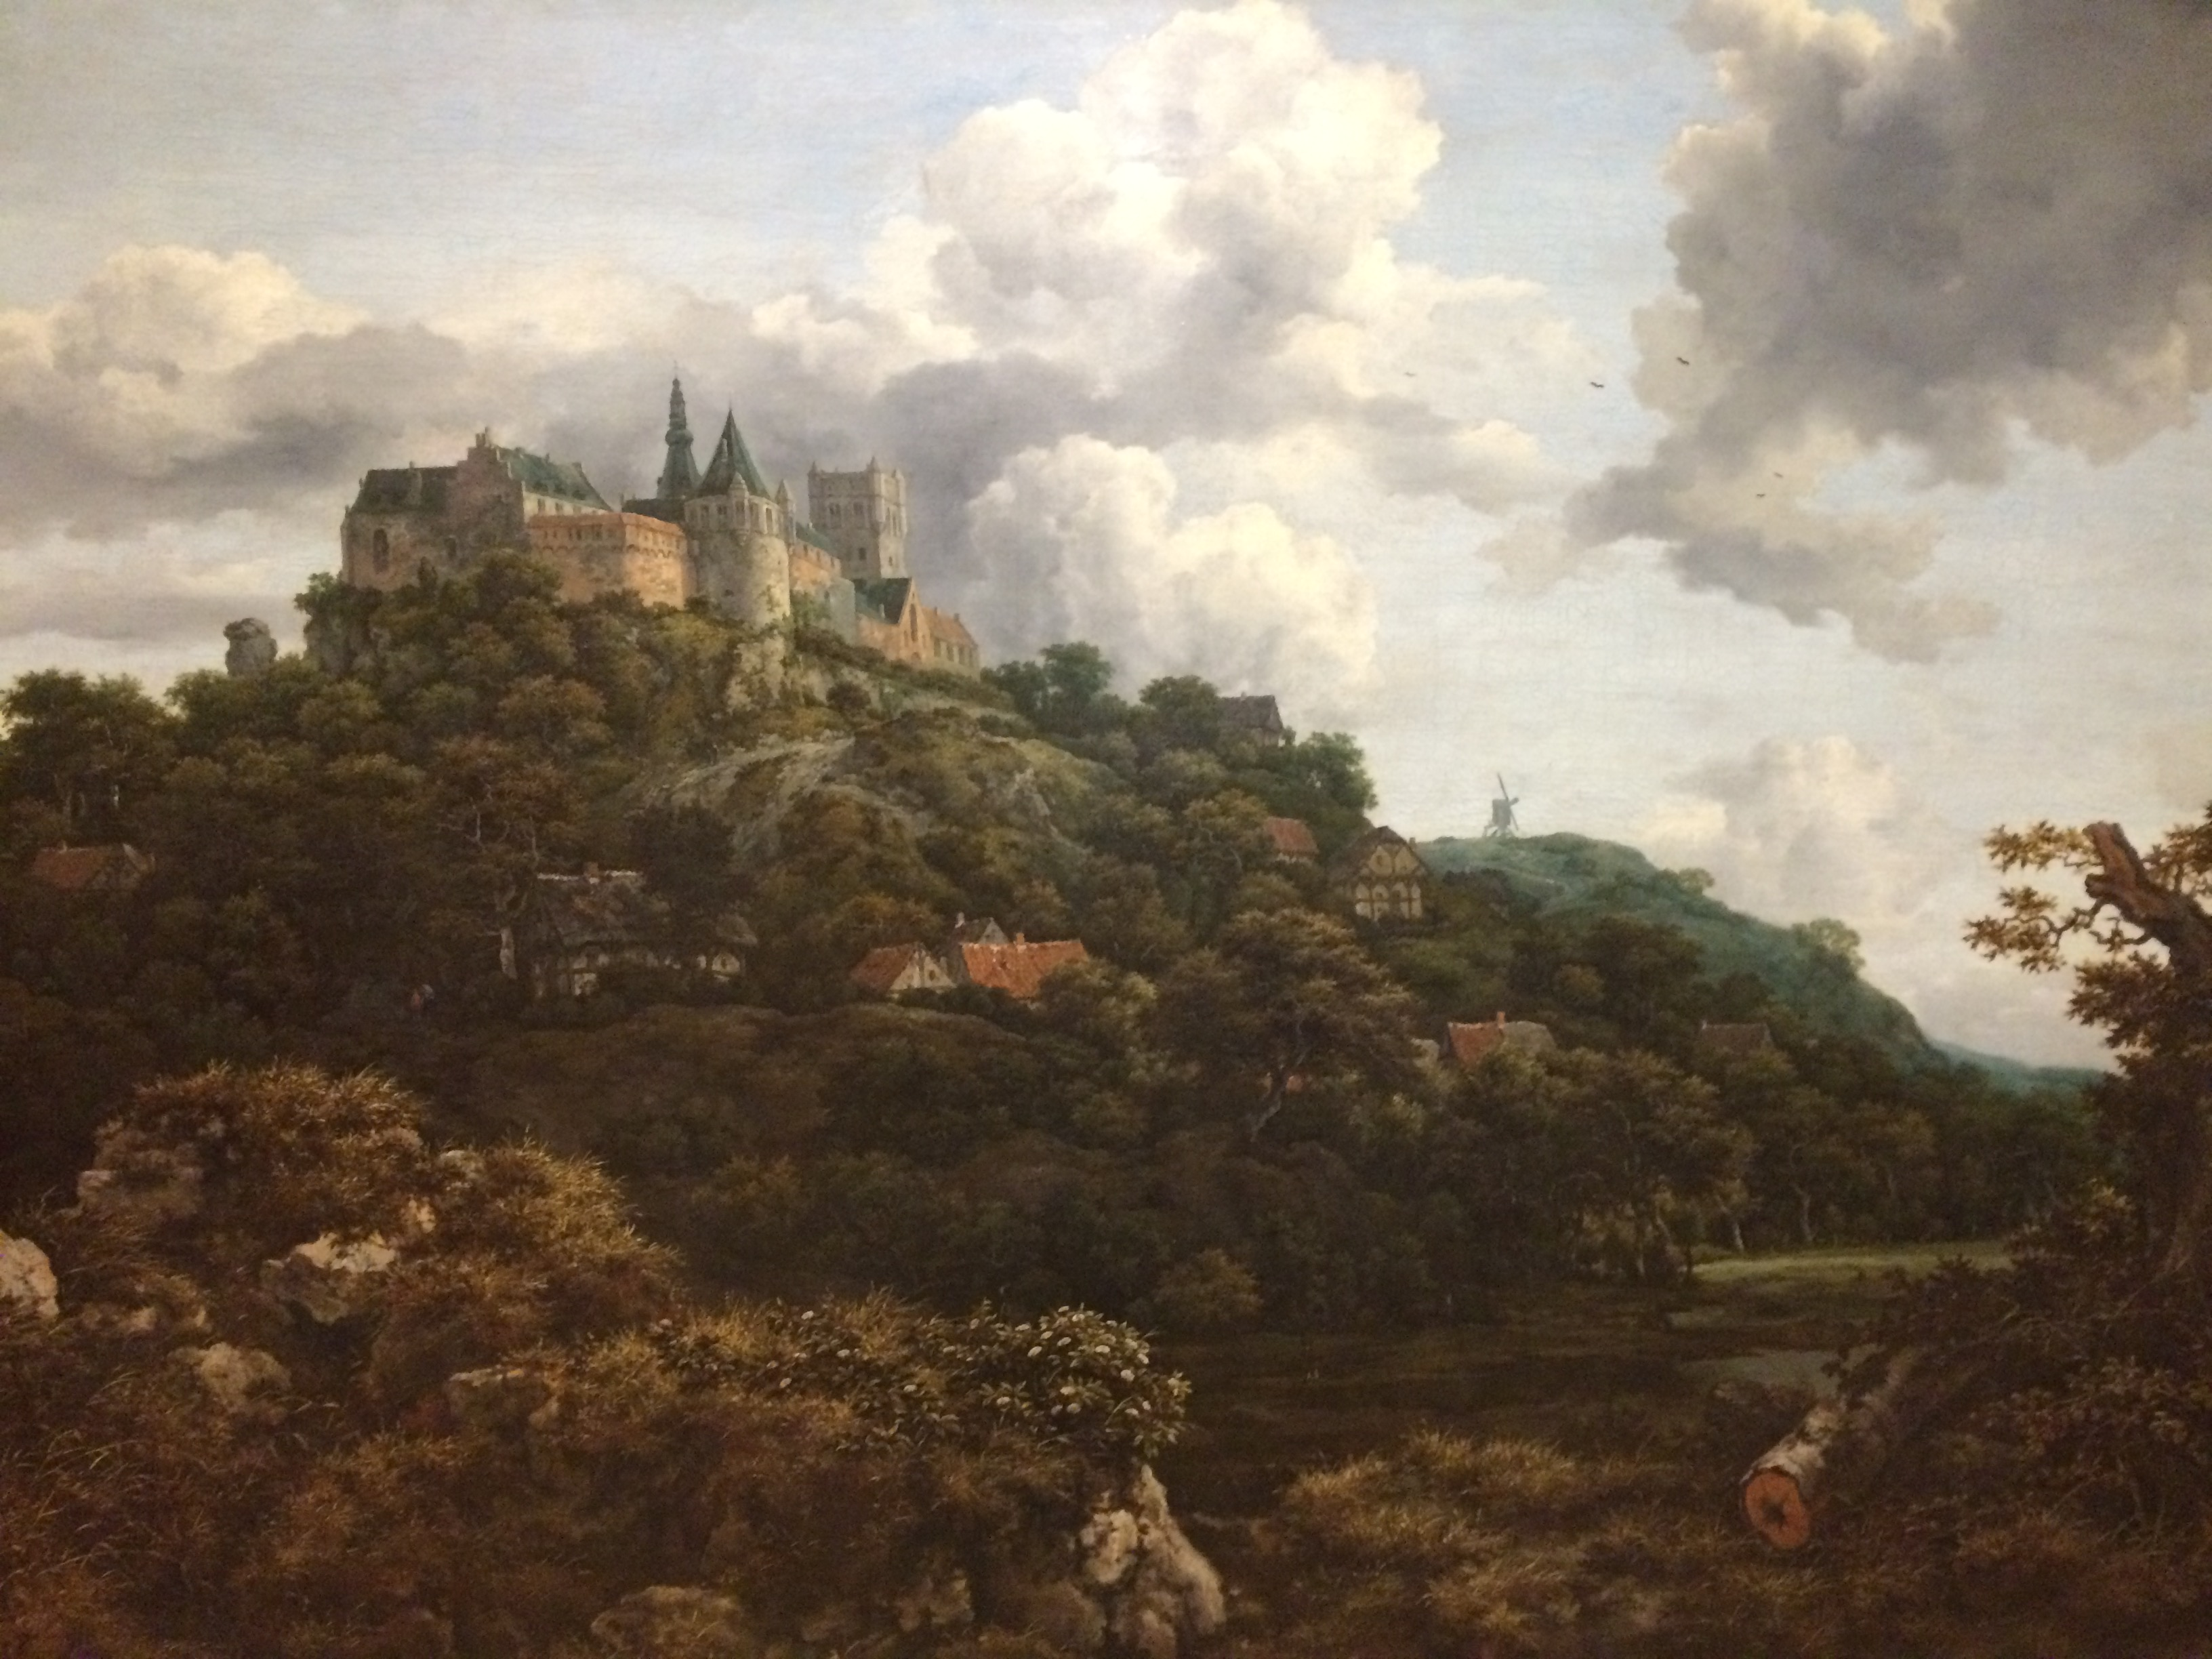 Landscape, modernity and nostalgia in the Dutch Golden Age